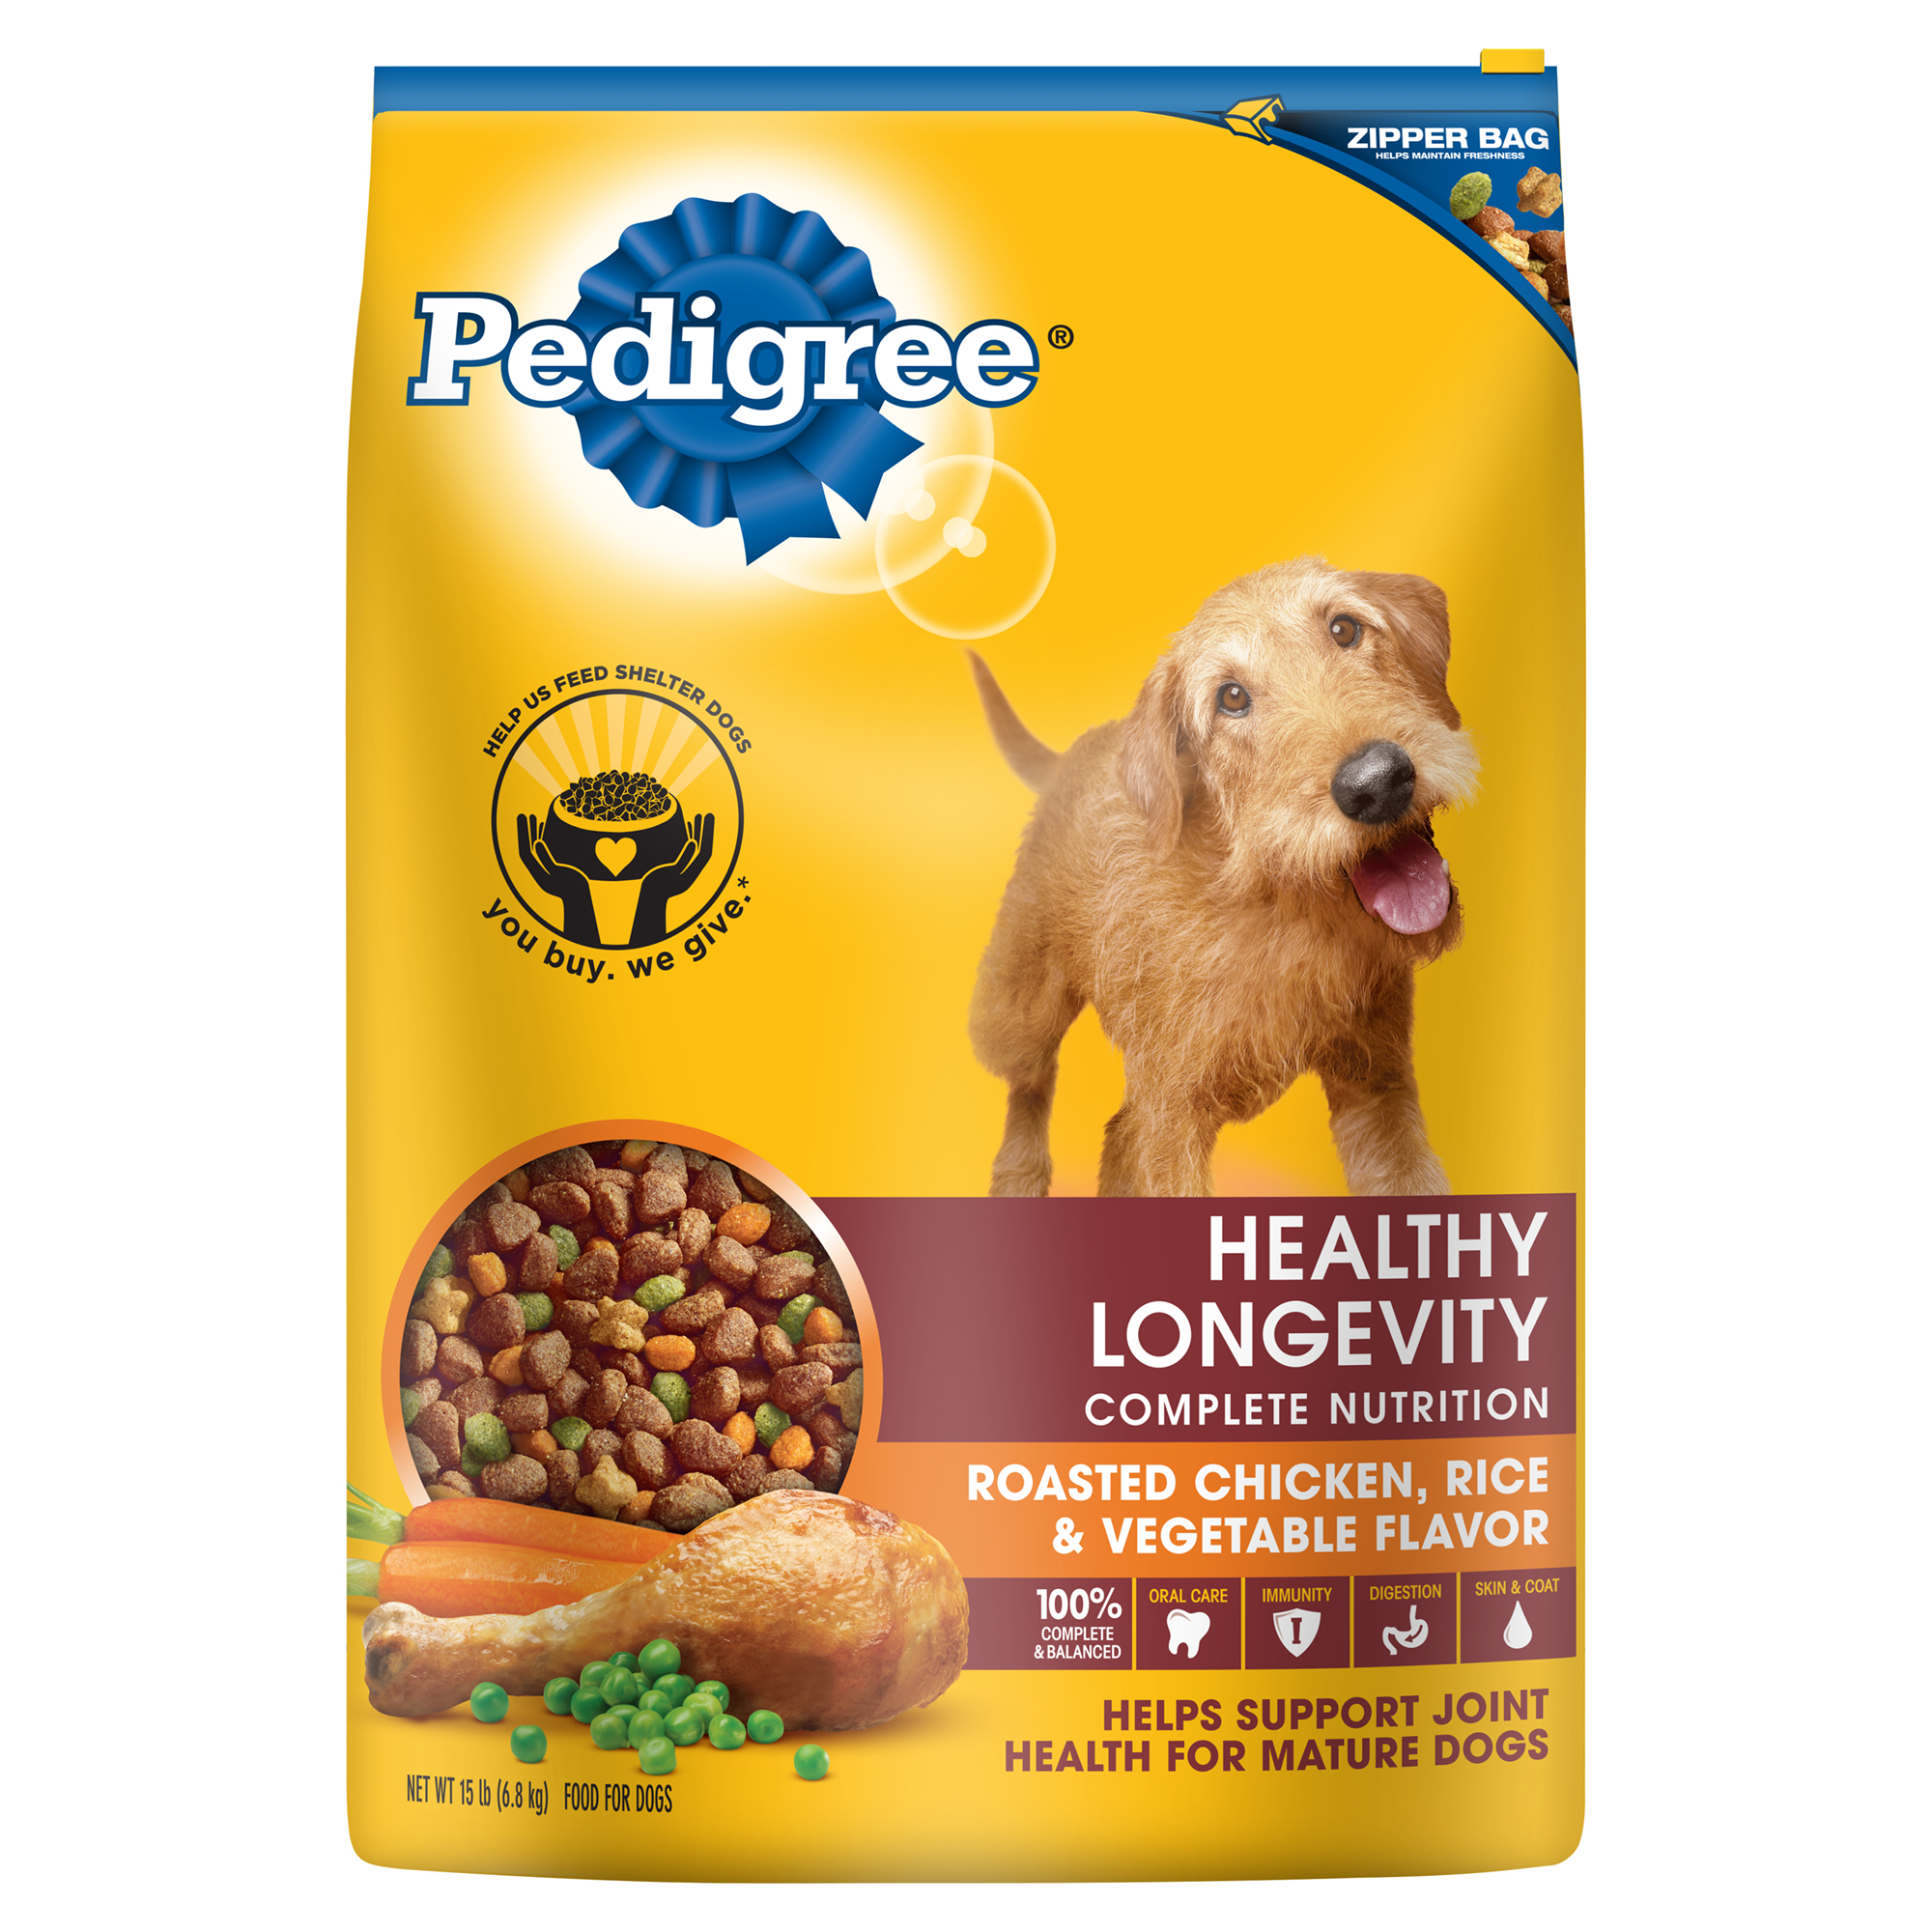 PEDIGREE Healthy Longevity Roasted Chicken, Rice & Vegetable Dry Dog Food 15 Pounds